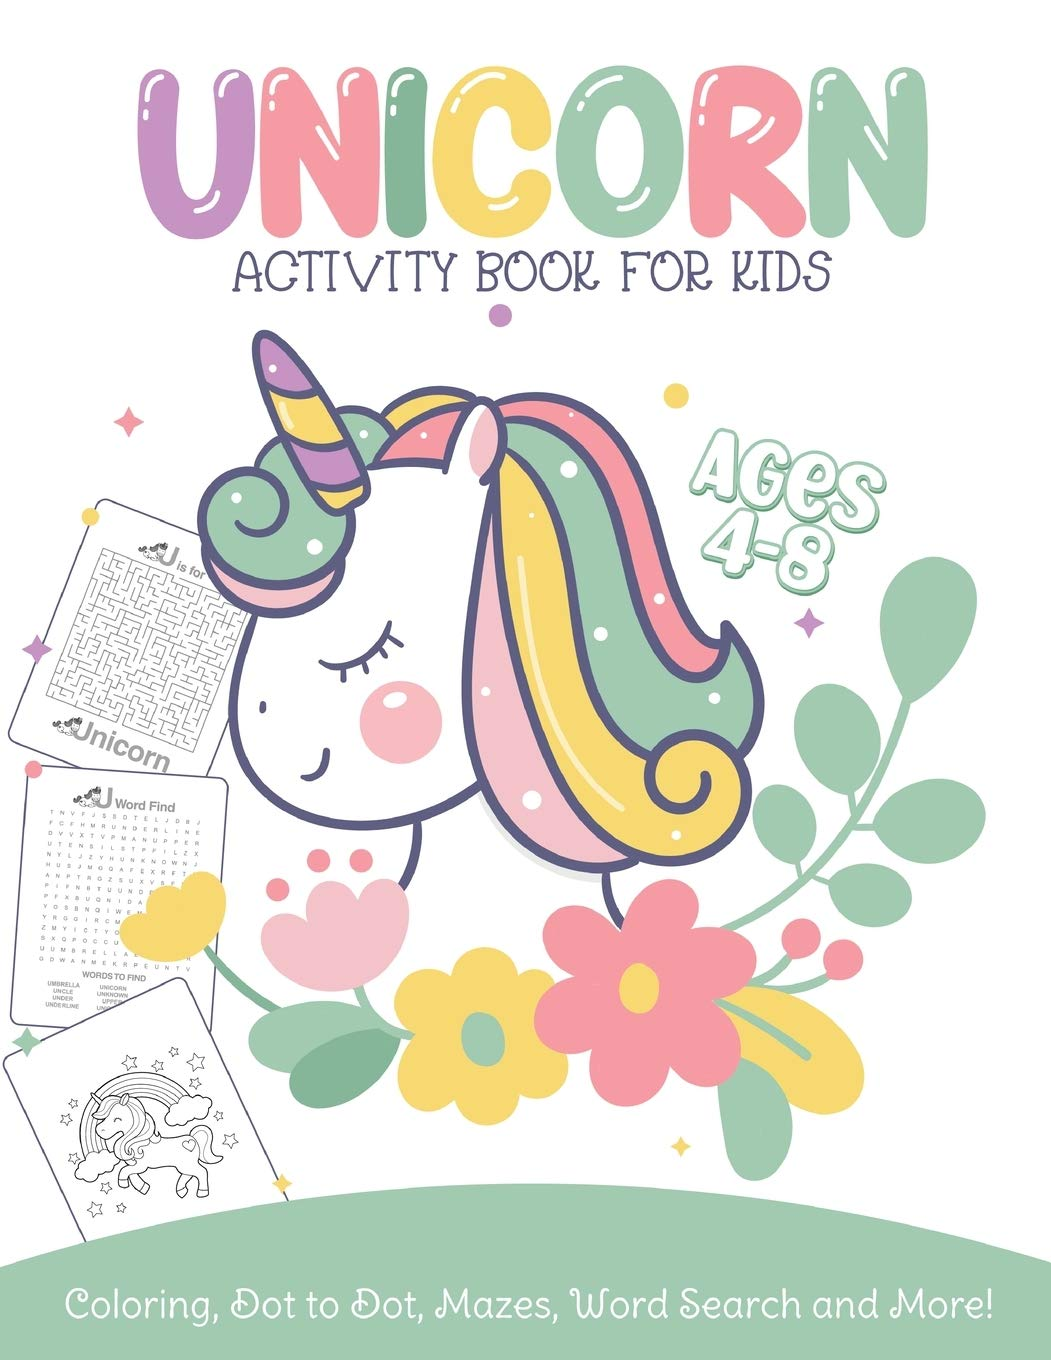 Unicorn Activity Book For Kids Ages 4-8 Coloring, Dot To Dot, Mazes, Word Search and More: Easy Non Fiction - Juvenile - Activity Books - Alphabet Books